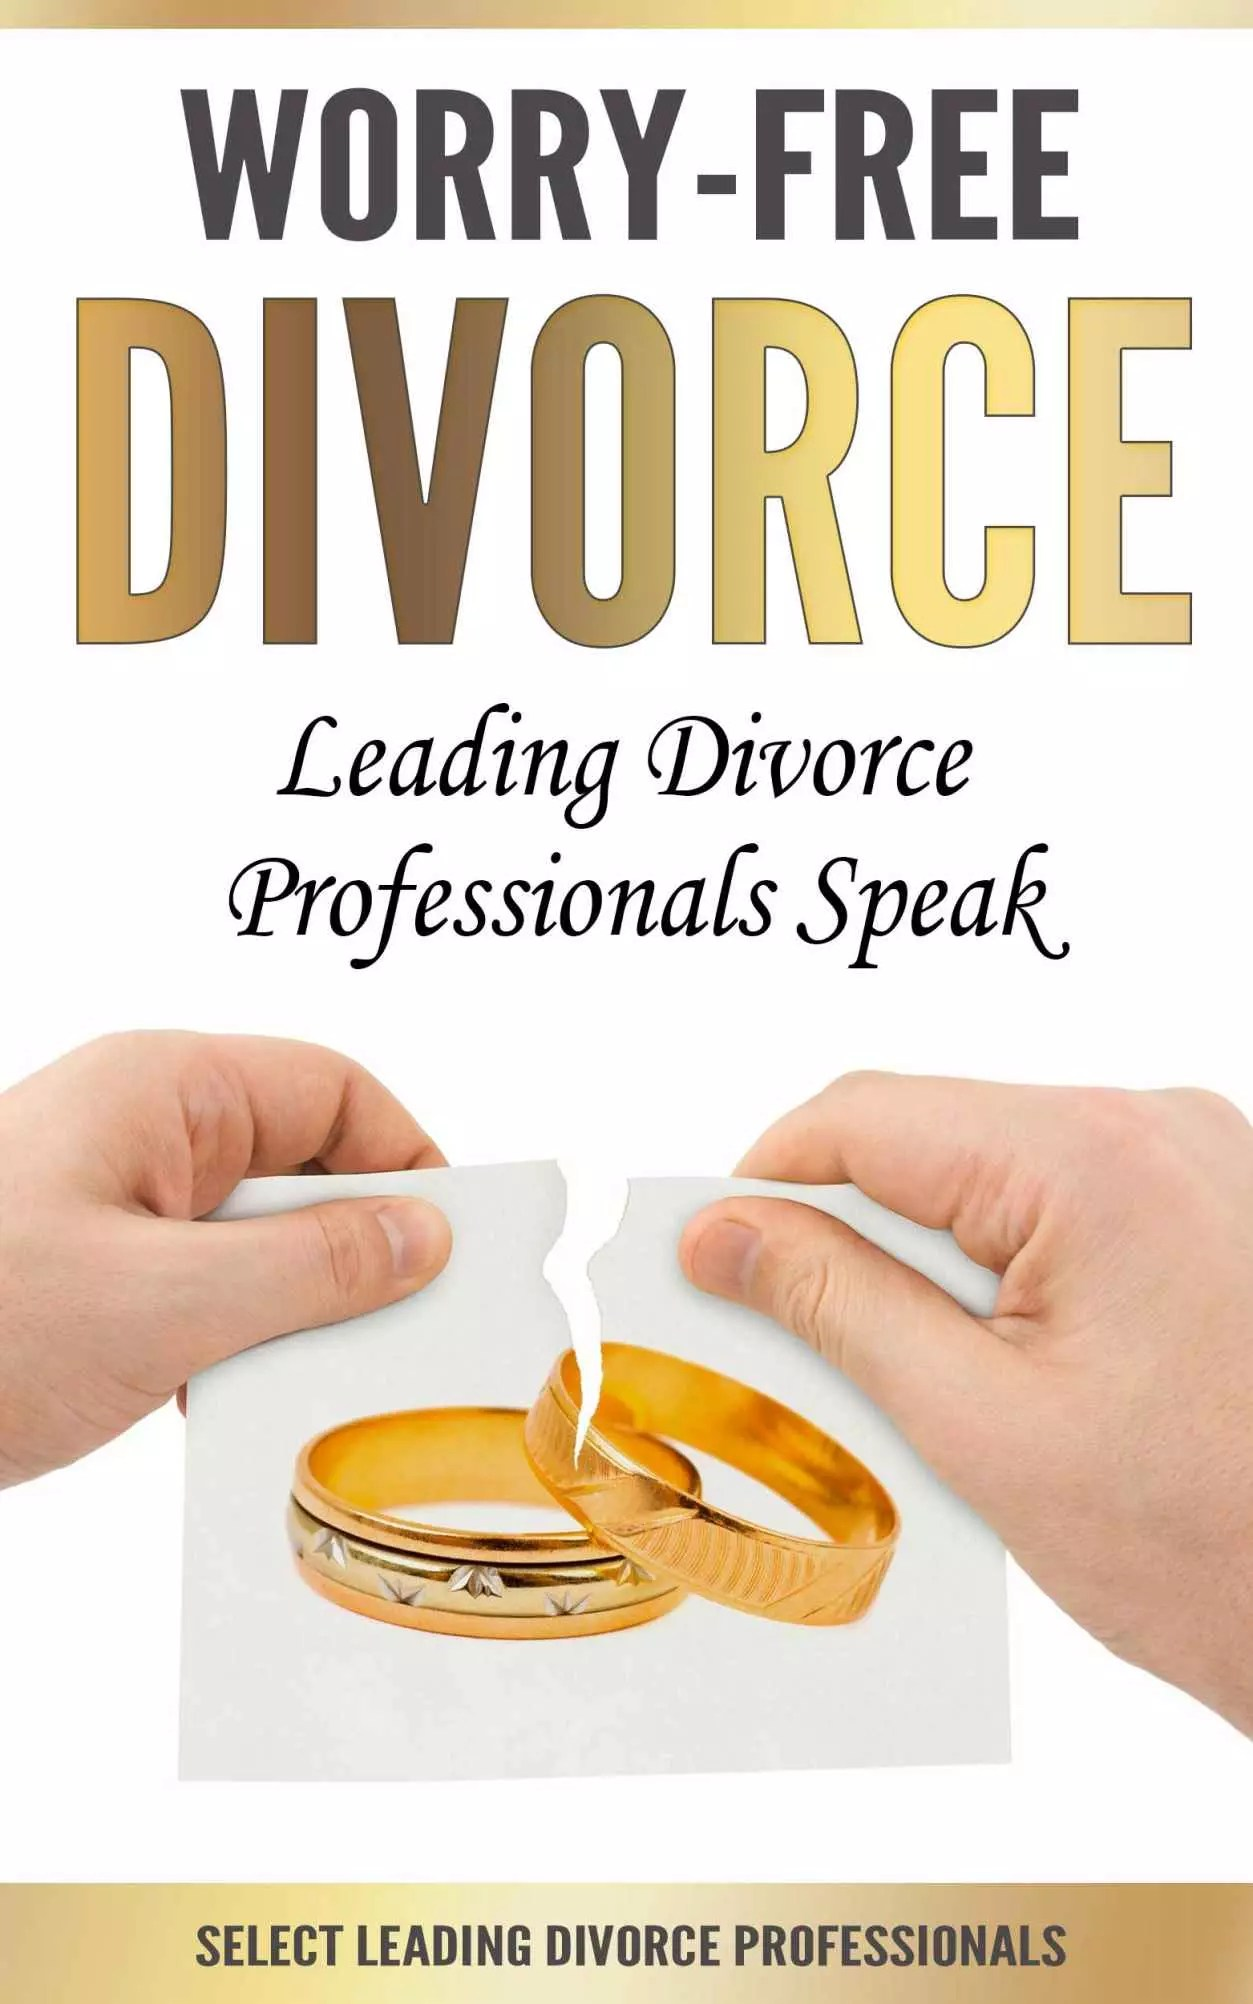 Book Launch: Worry-Free Divorce - Micklin Law Group